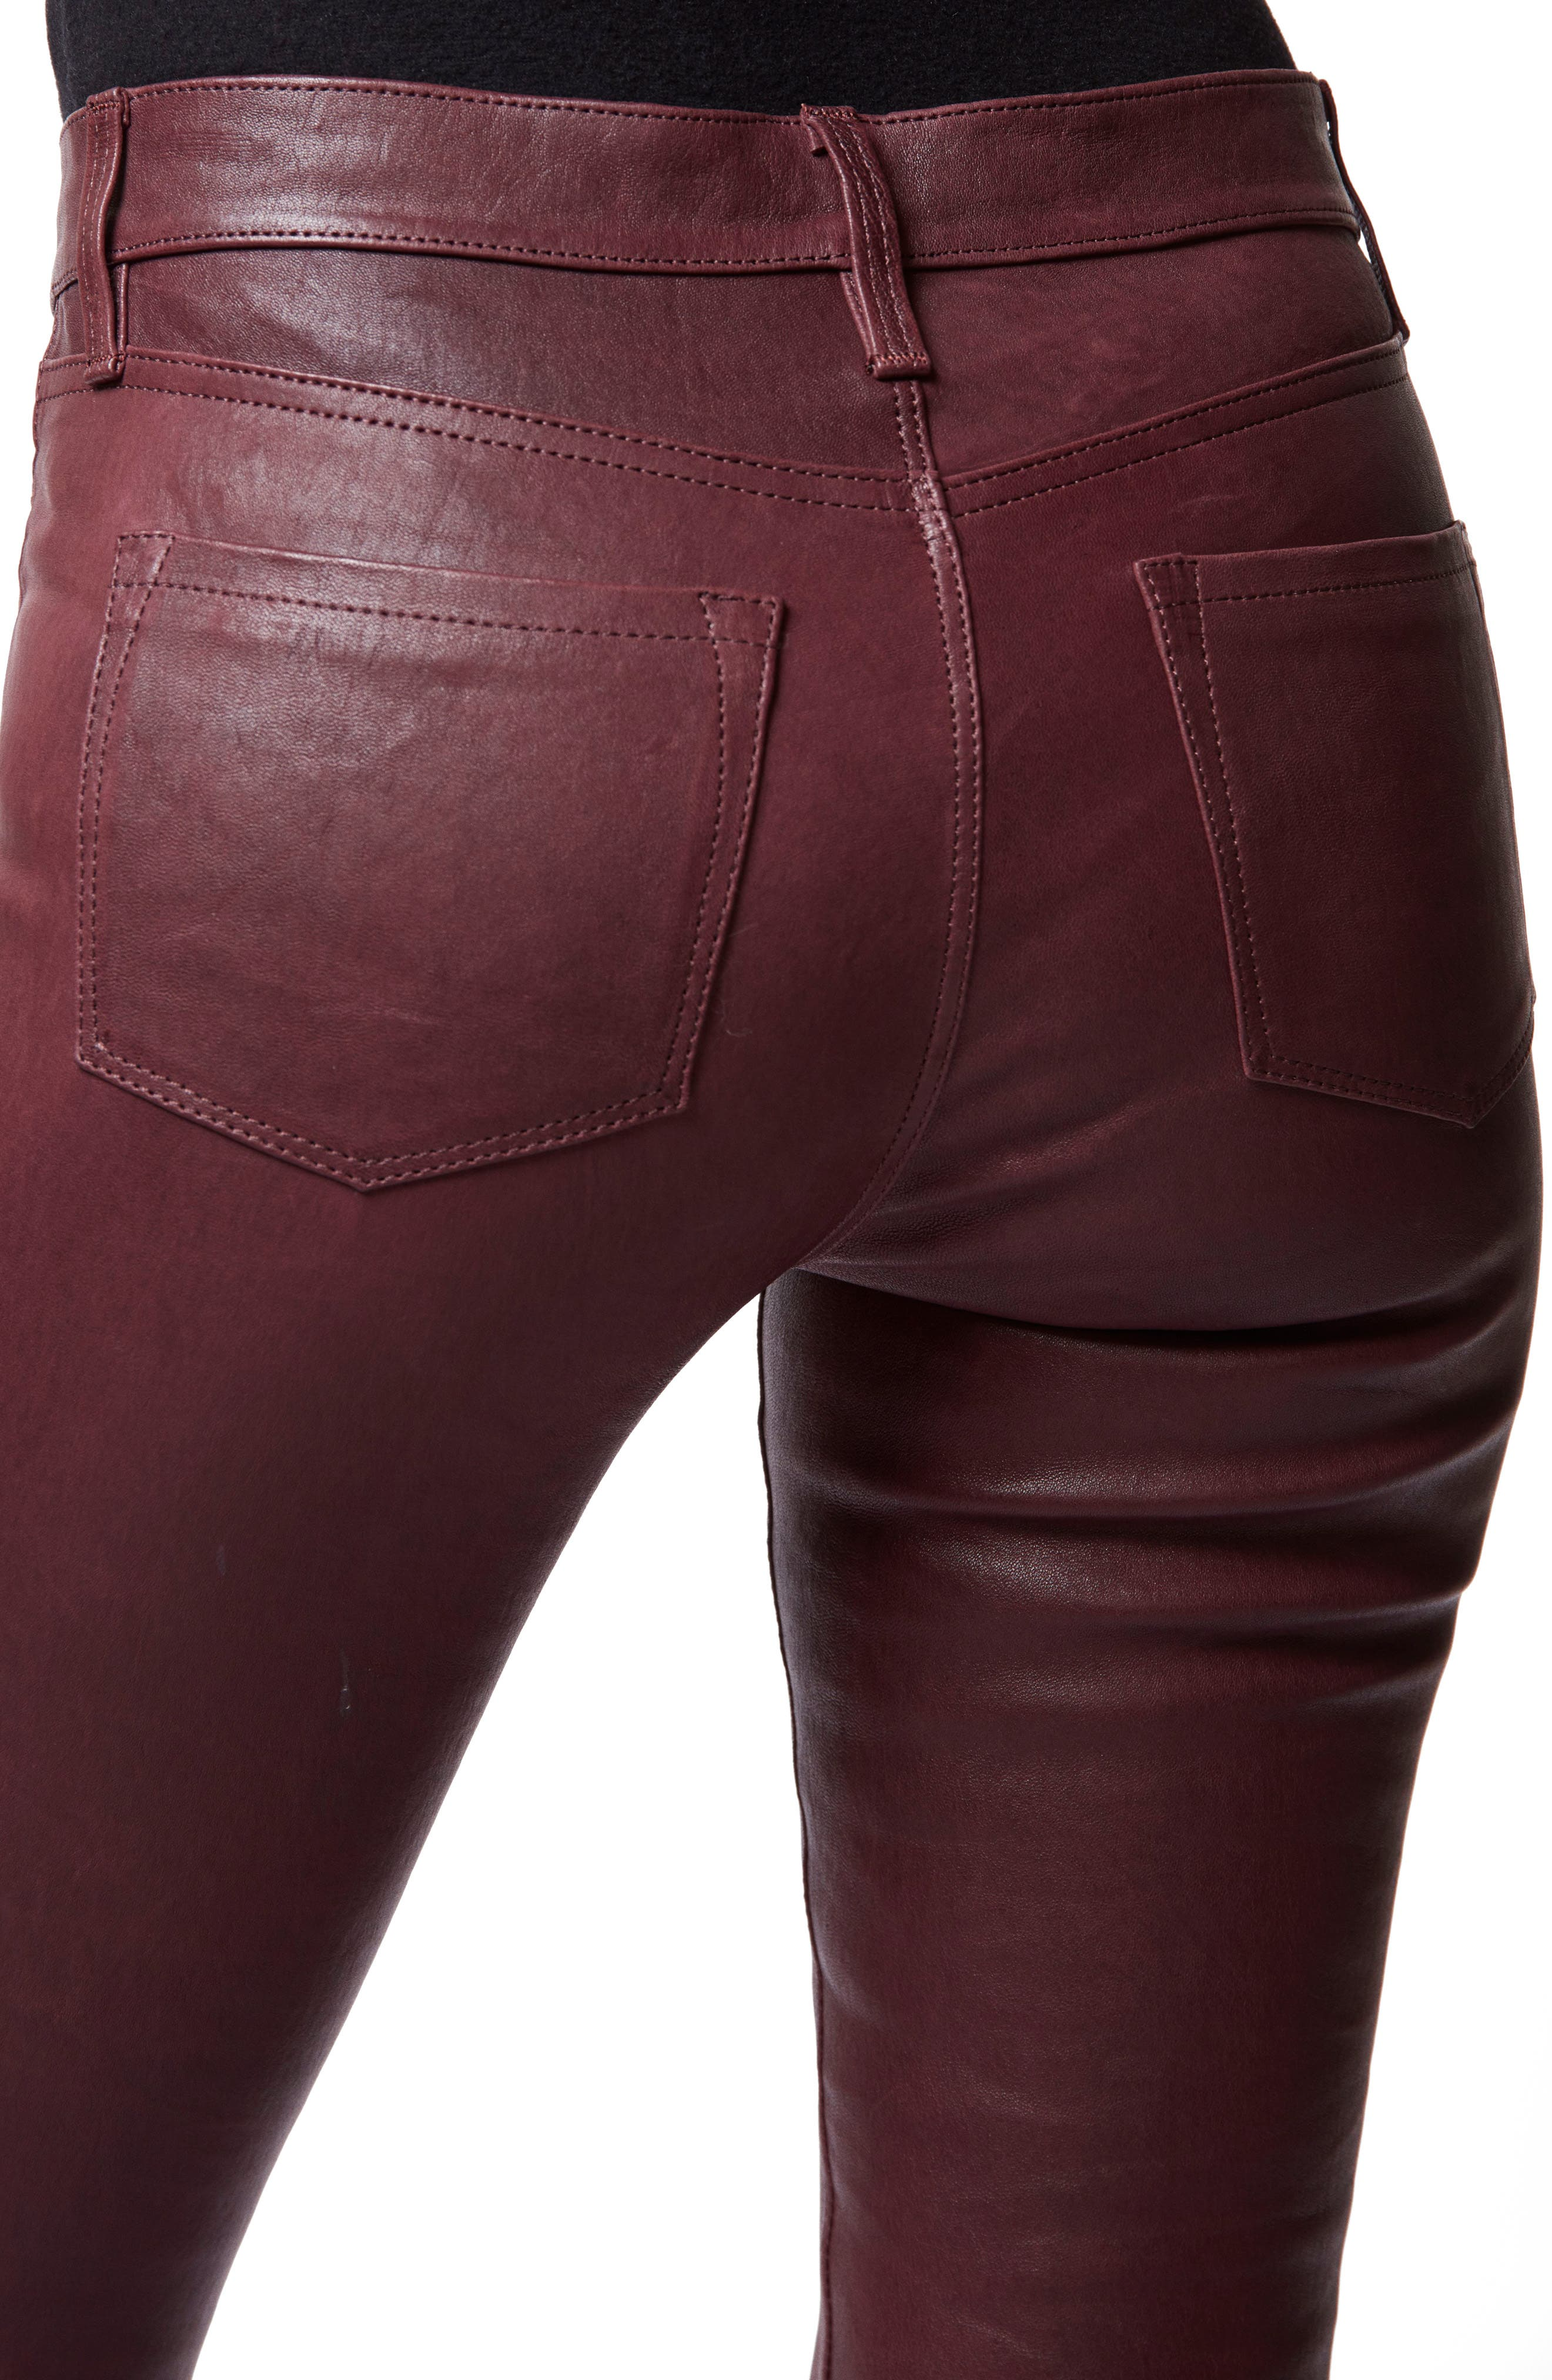 '8001' Lambskin Leather Pants,                             Alternate thumbnail 4, color,                             510